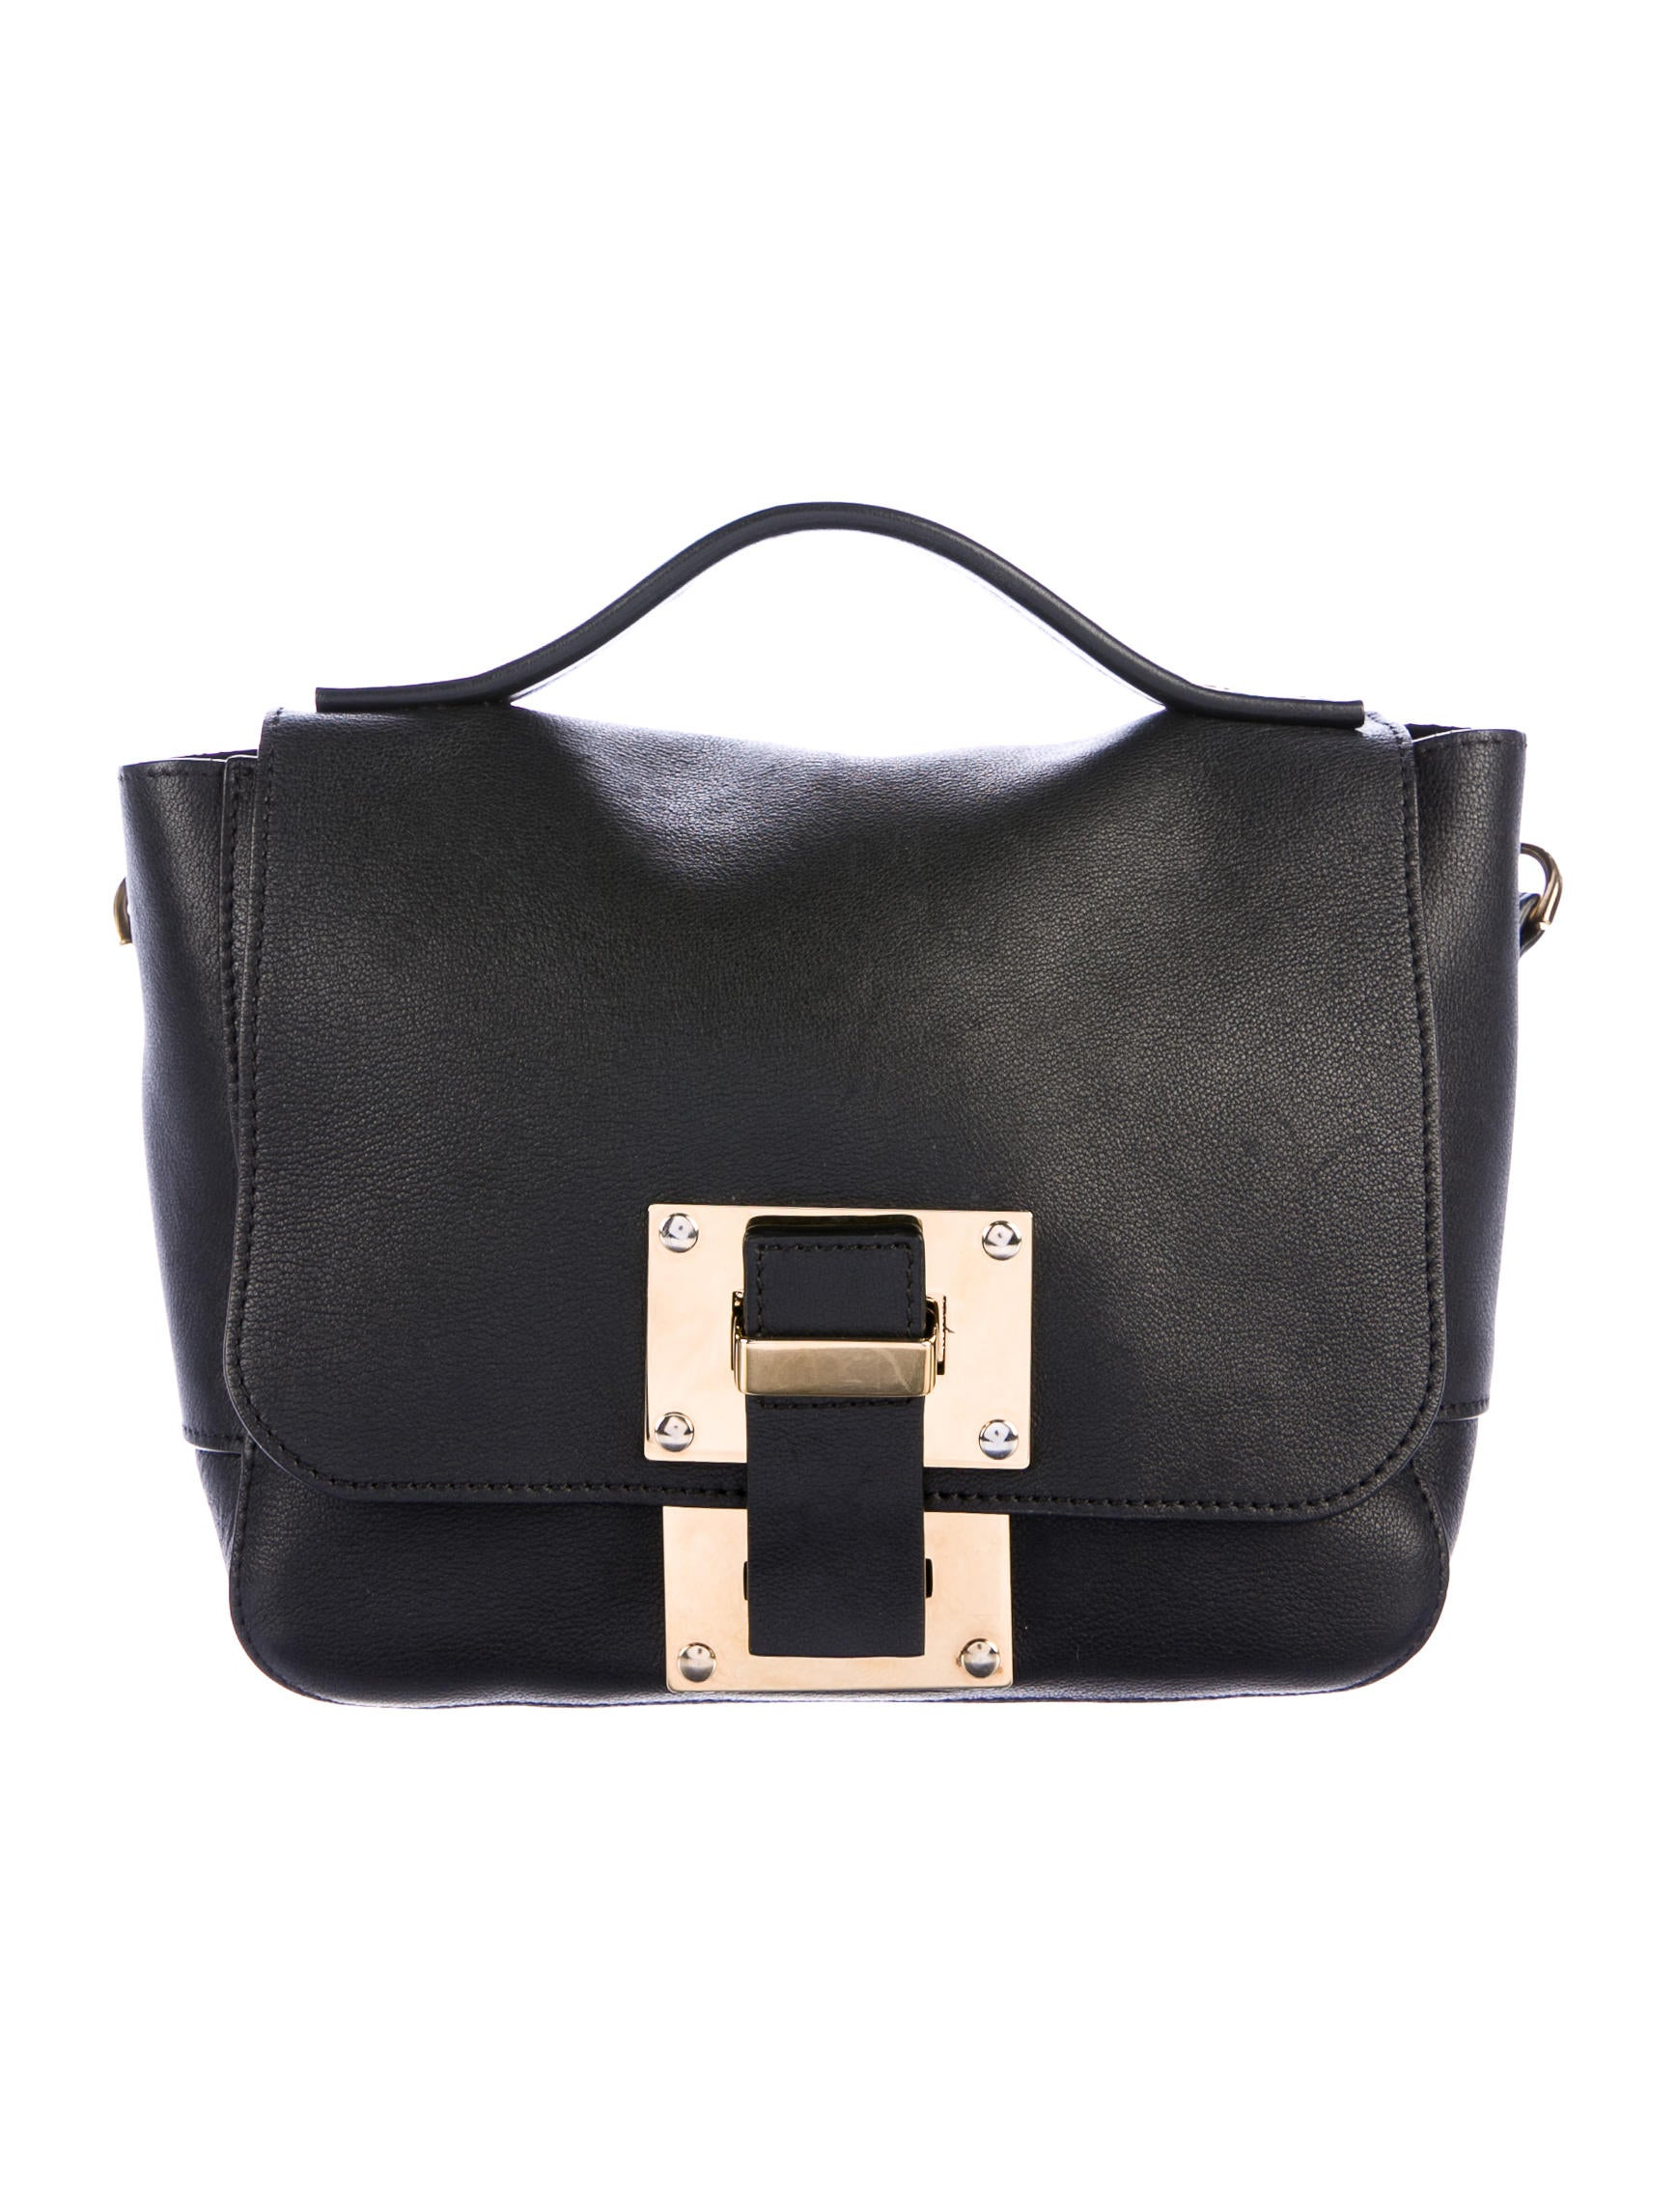 Sophie Hulme Leather Darwin Satchel Handbags SPH20393  : SPH203931enlarged from www.therealreal.com size 1737 x 2291 jpeg 288kB